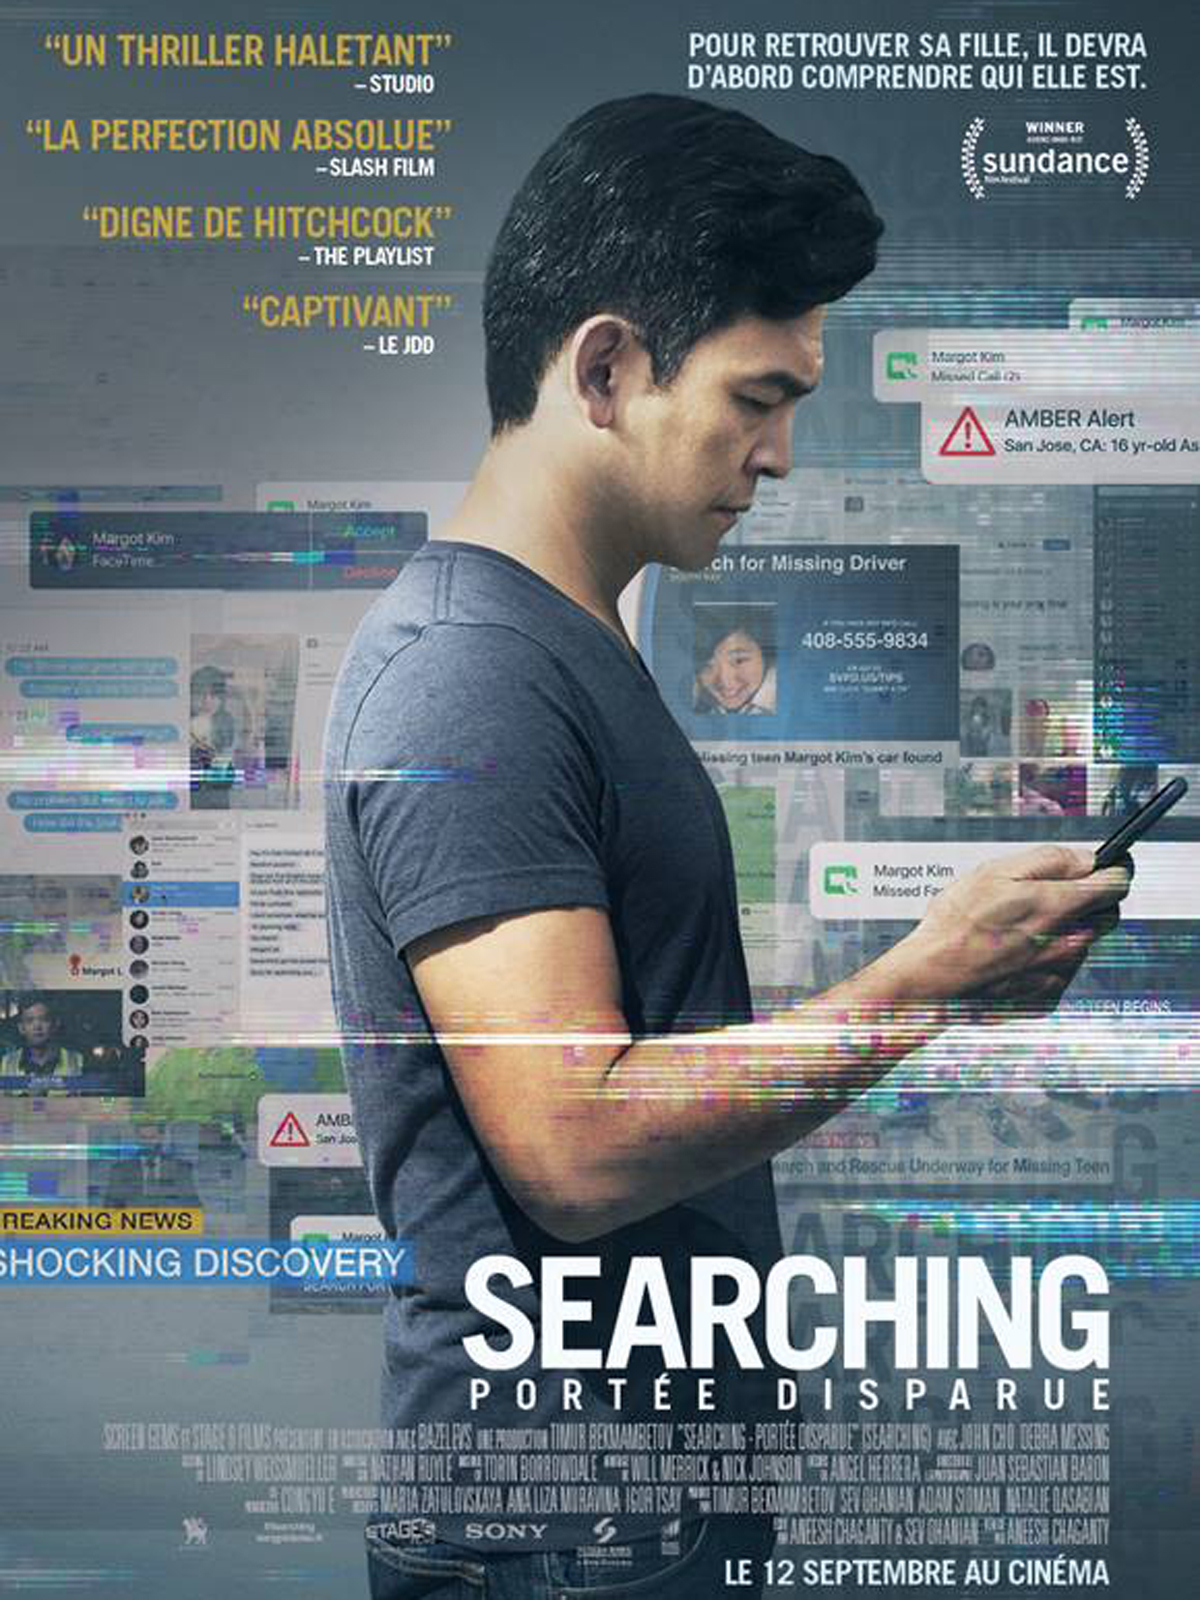 Image du film Searching - Portée disparue